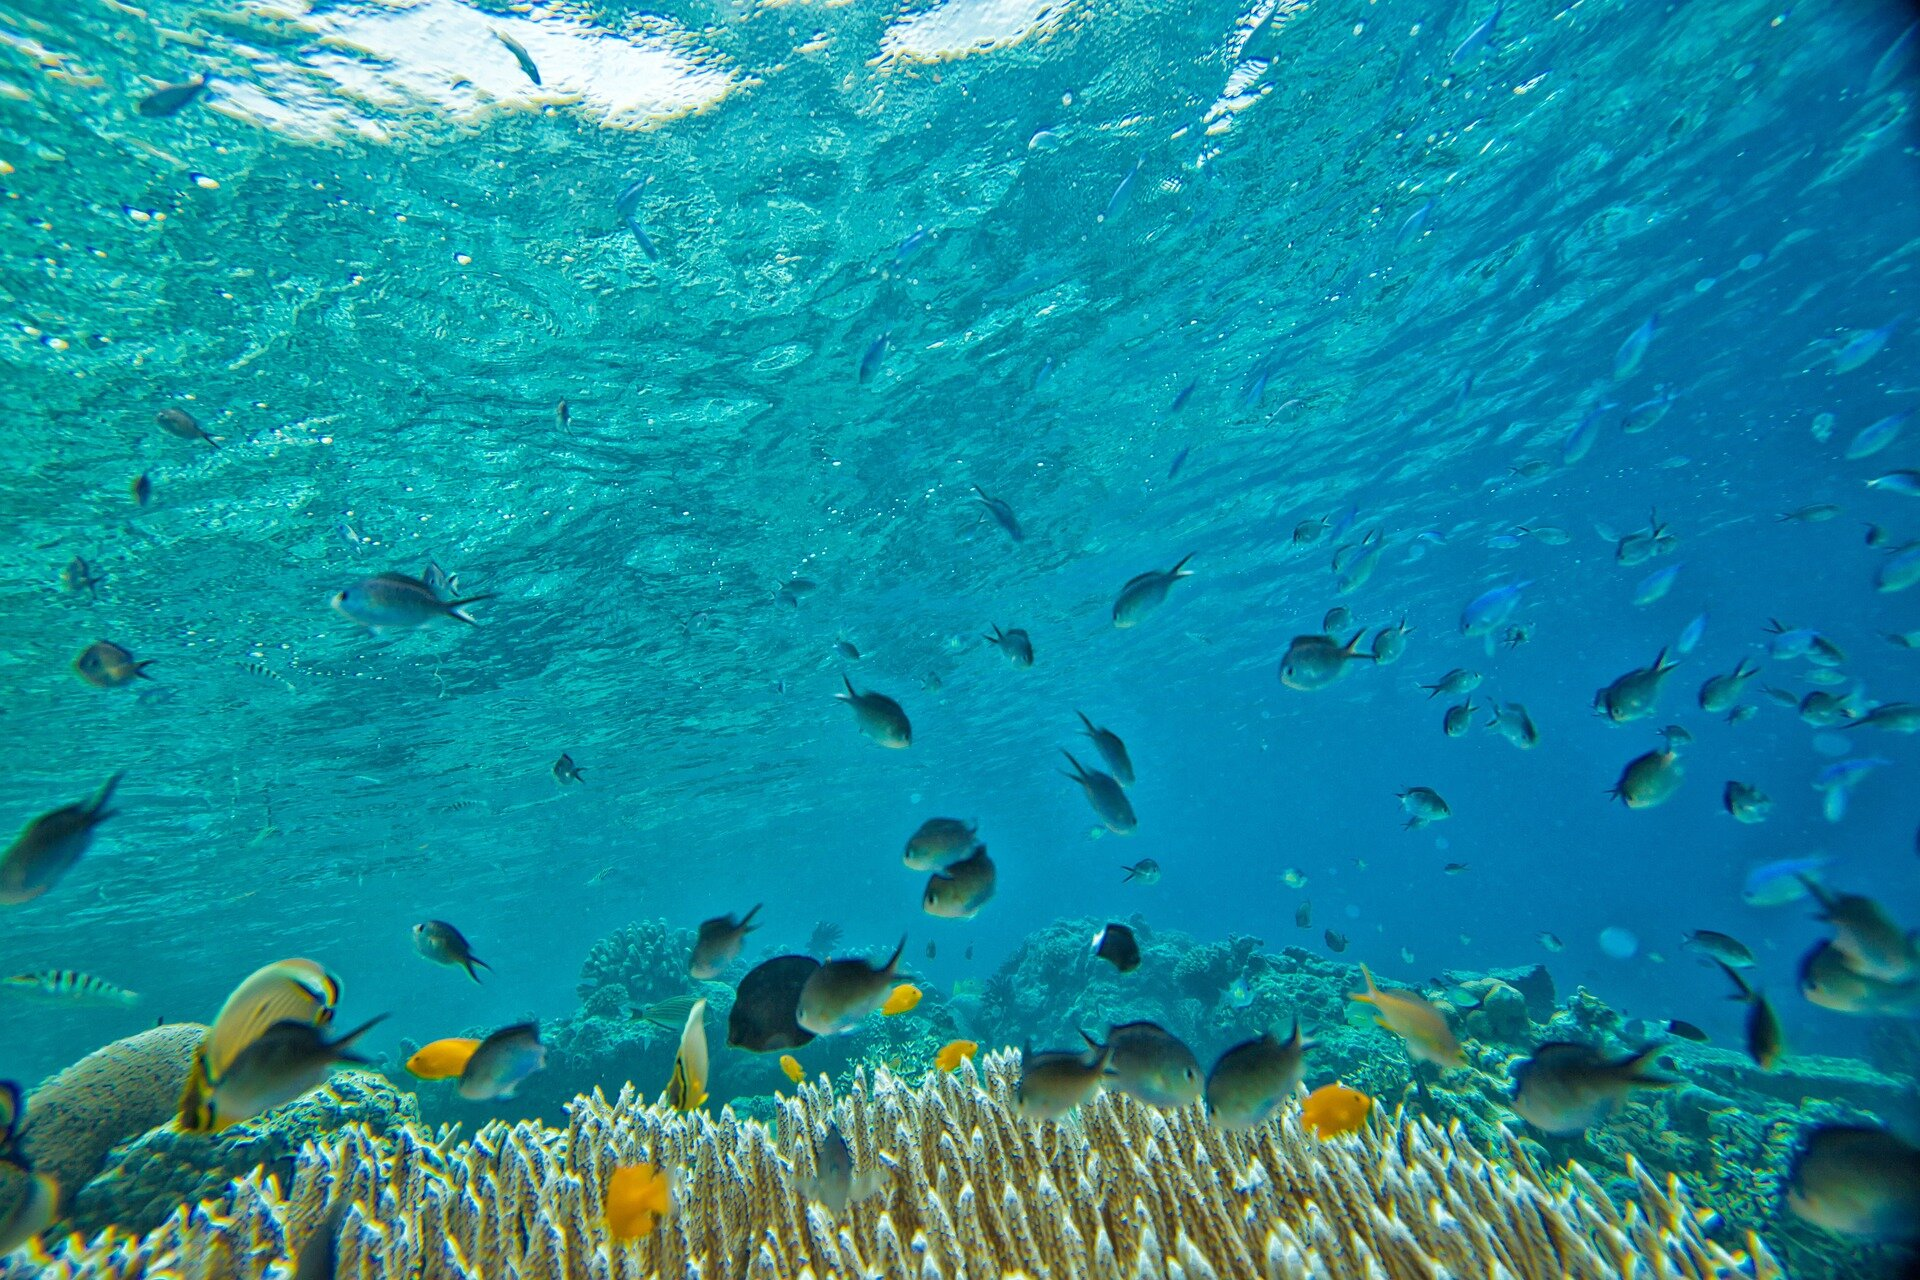 Tristin's dad stuffed a banana in her pocket on one of her first dives, which caused a 'rainbow coalition' of fish to swarm around her! Photo: Pixabay